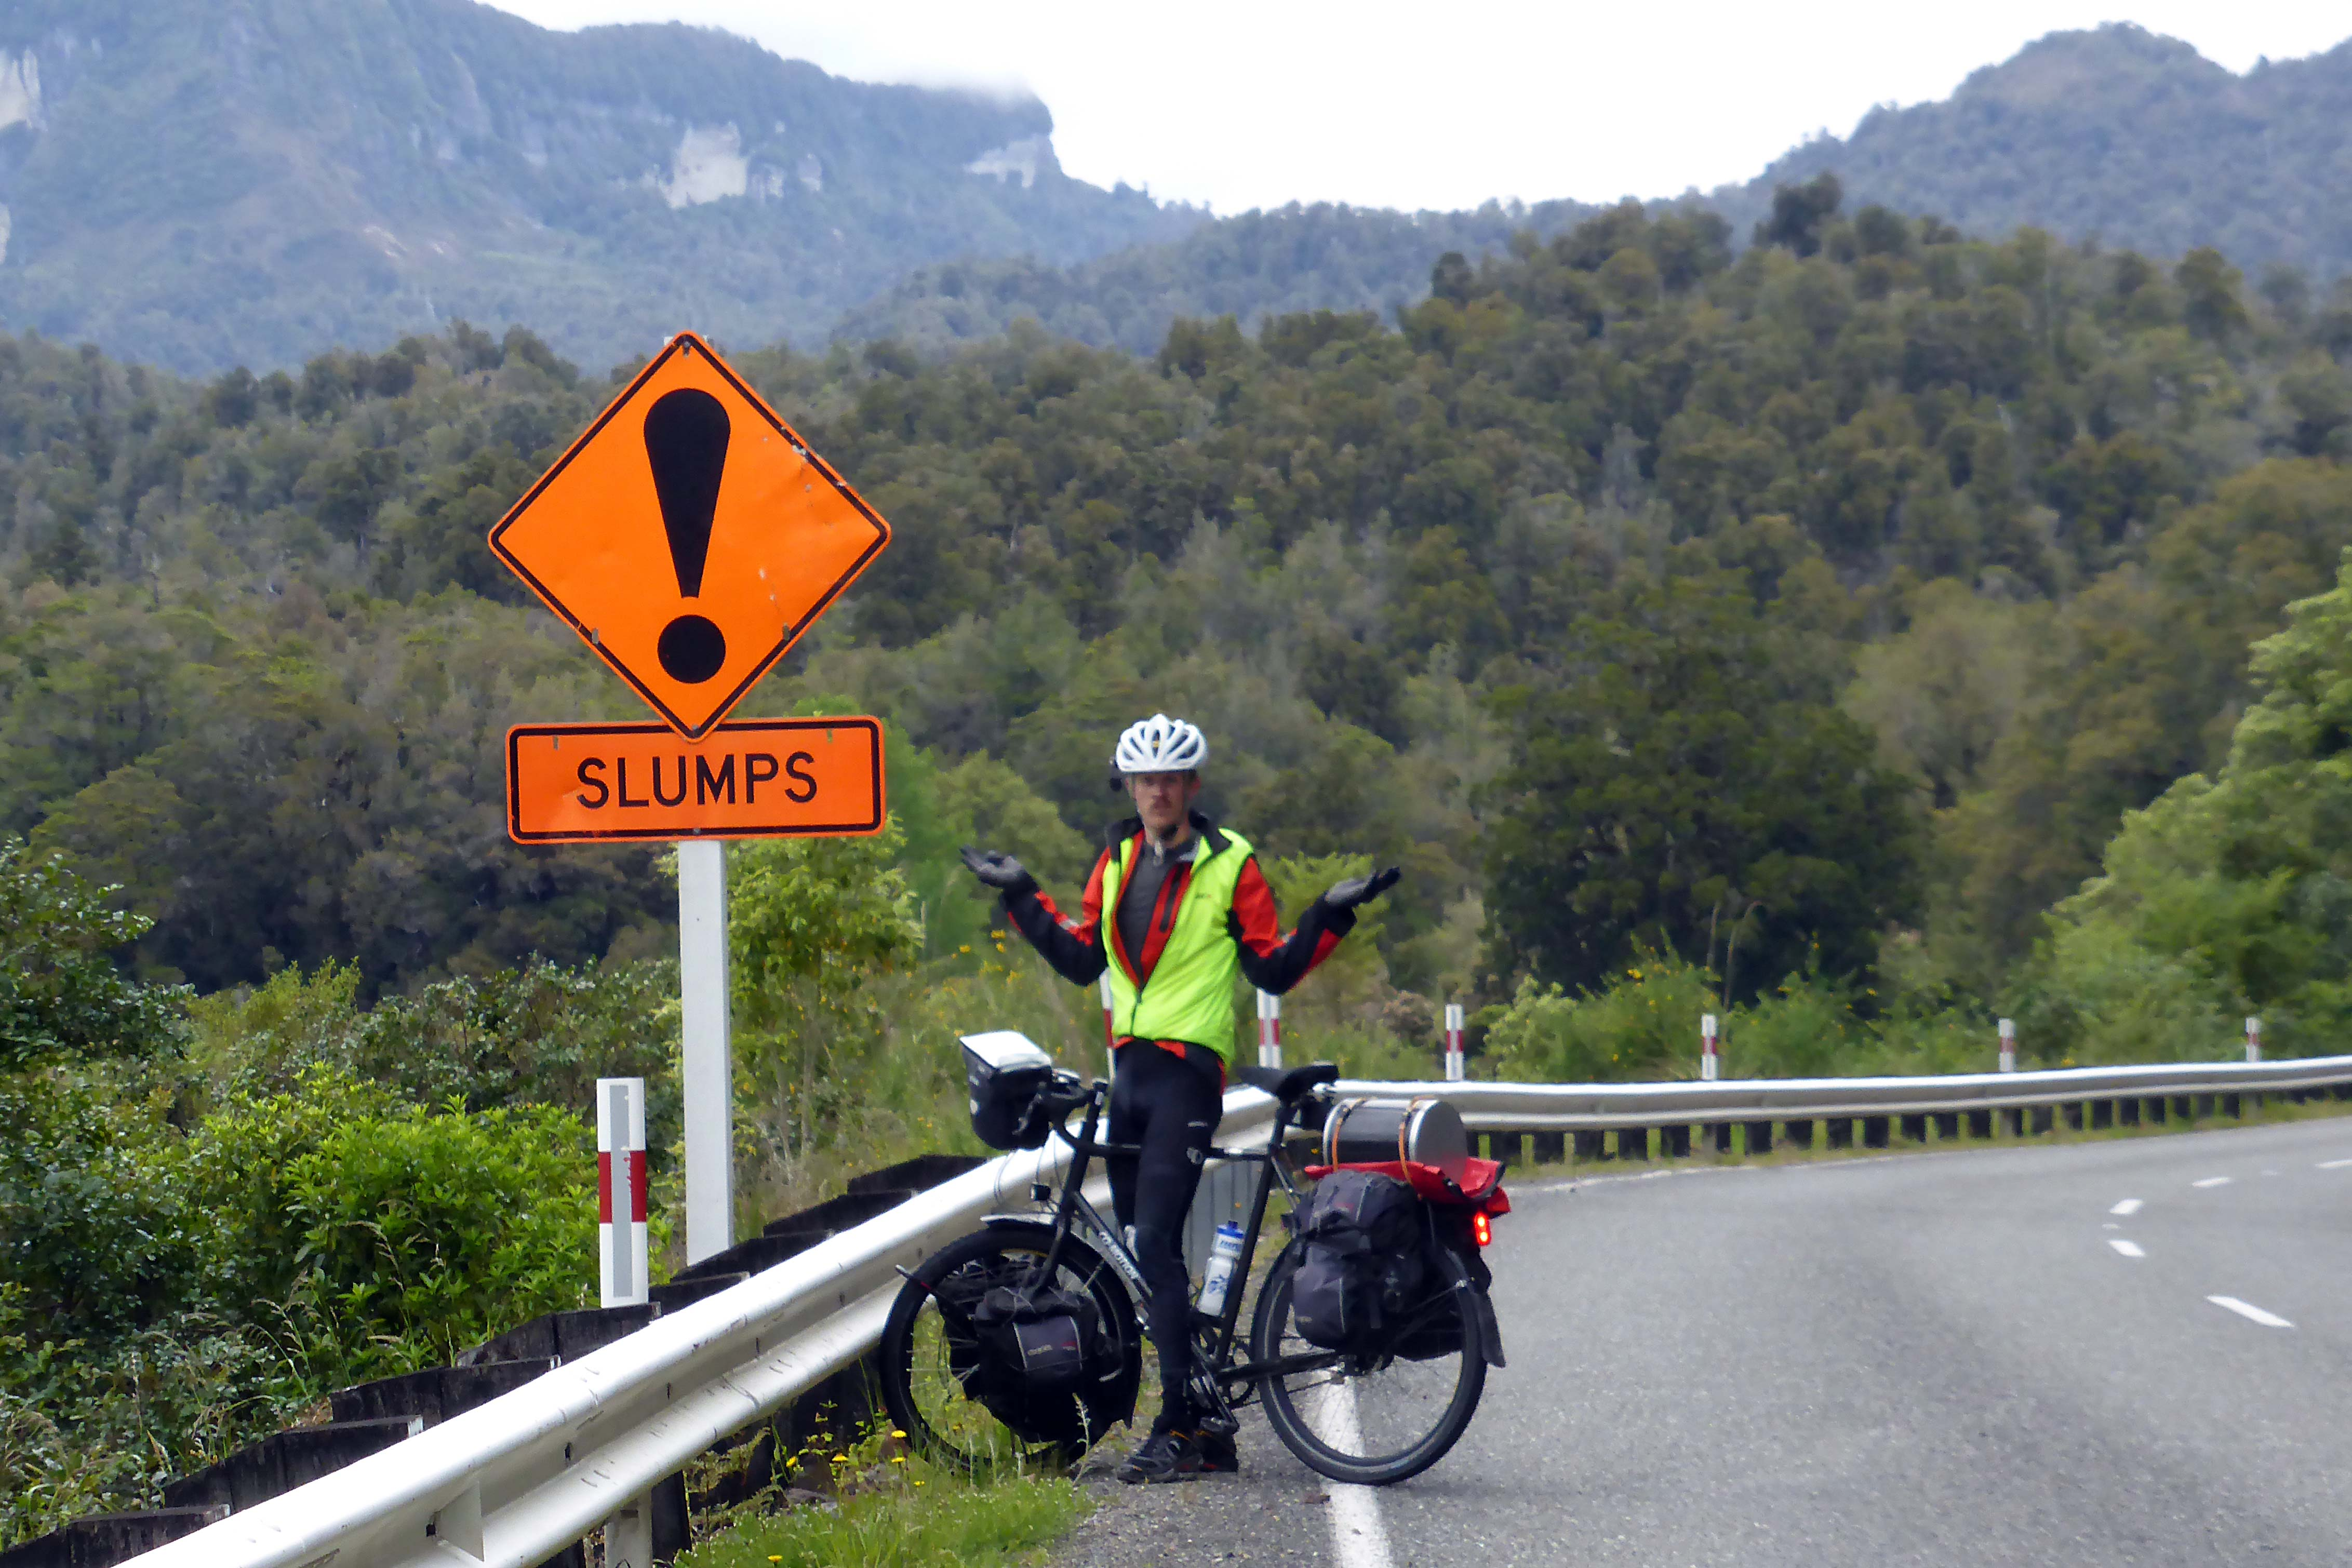 """A bicyclist stands next to a road sign which reads """"slumps"""""""